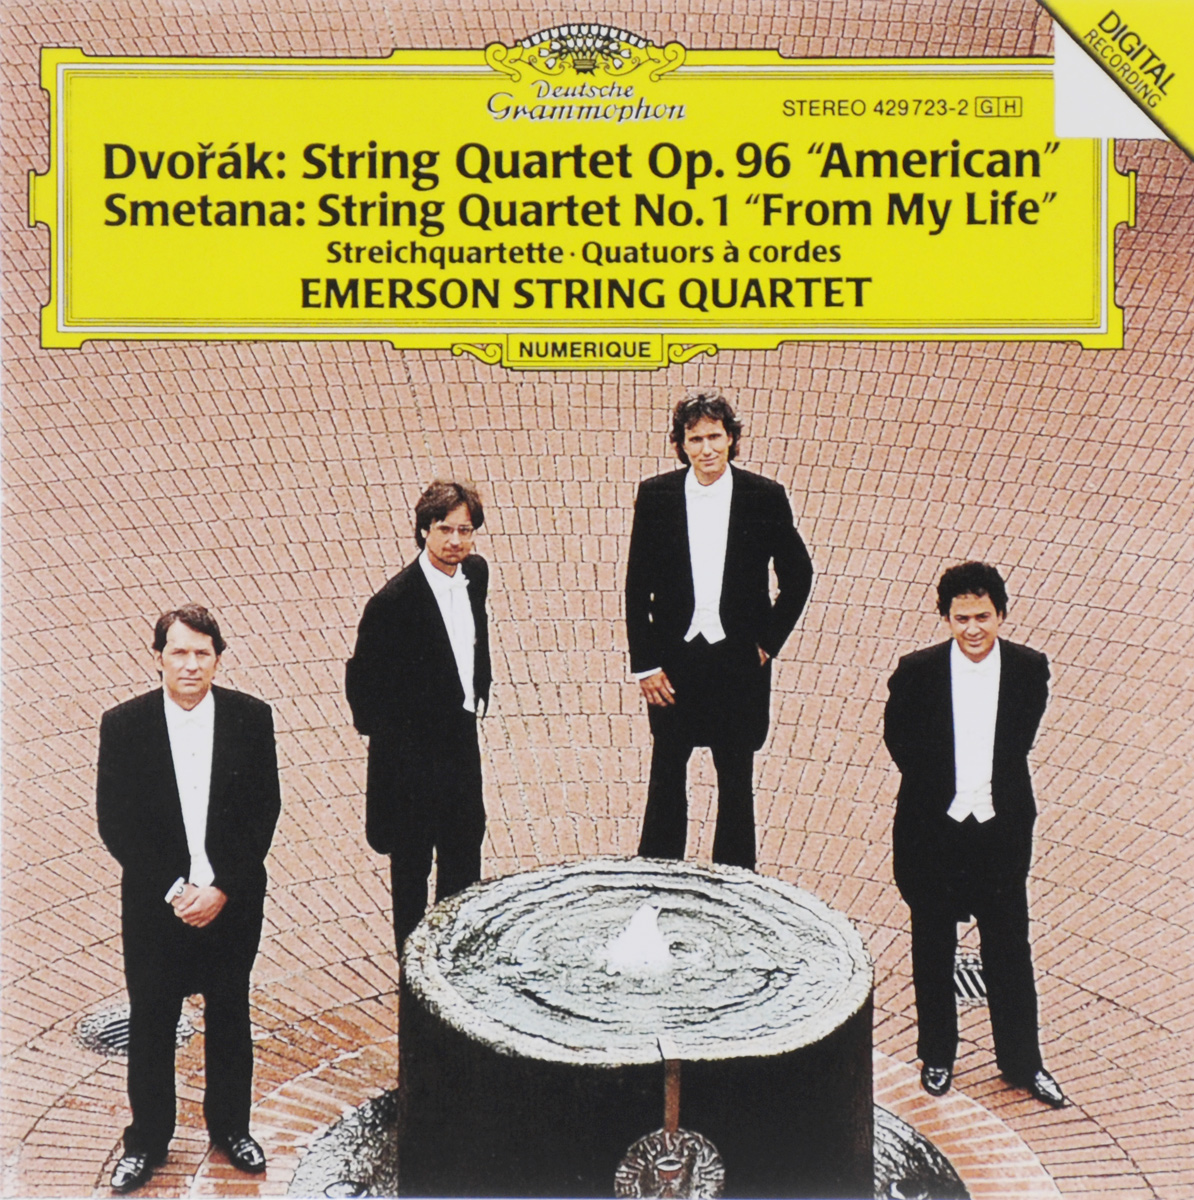 Emerson String Quartet Emerson String Quartet. String Quartet Op. 96 American / String Quartet No. 1 From My Life funssor 1set diy replicator 3mm acrylic hood cover enclosure kit for replicator 3d printer clones